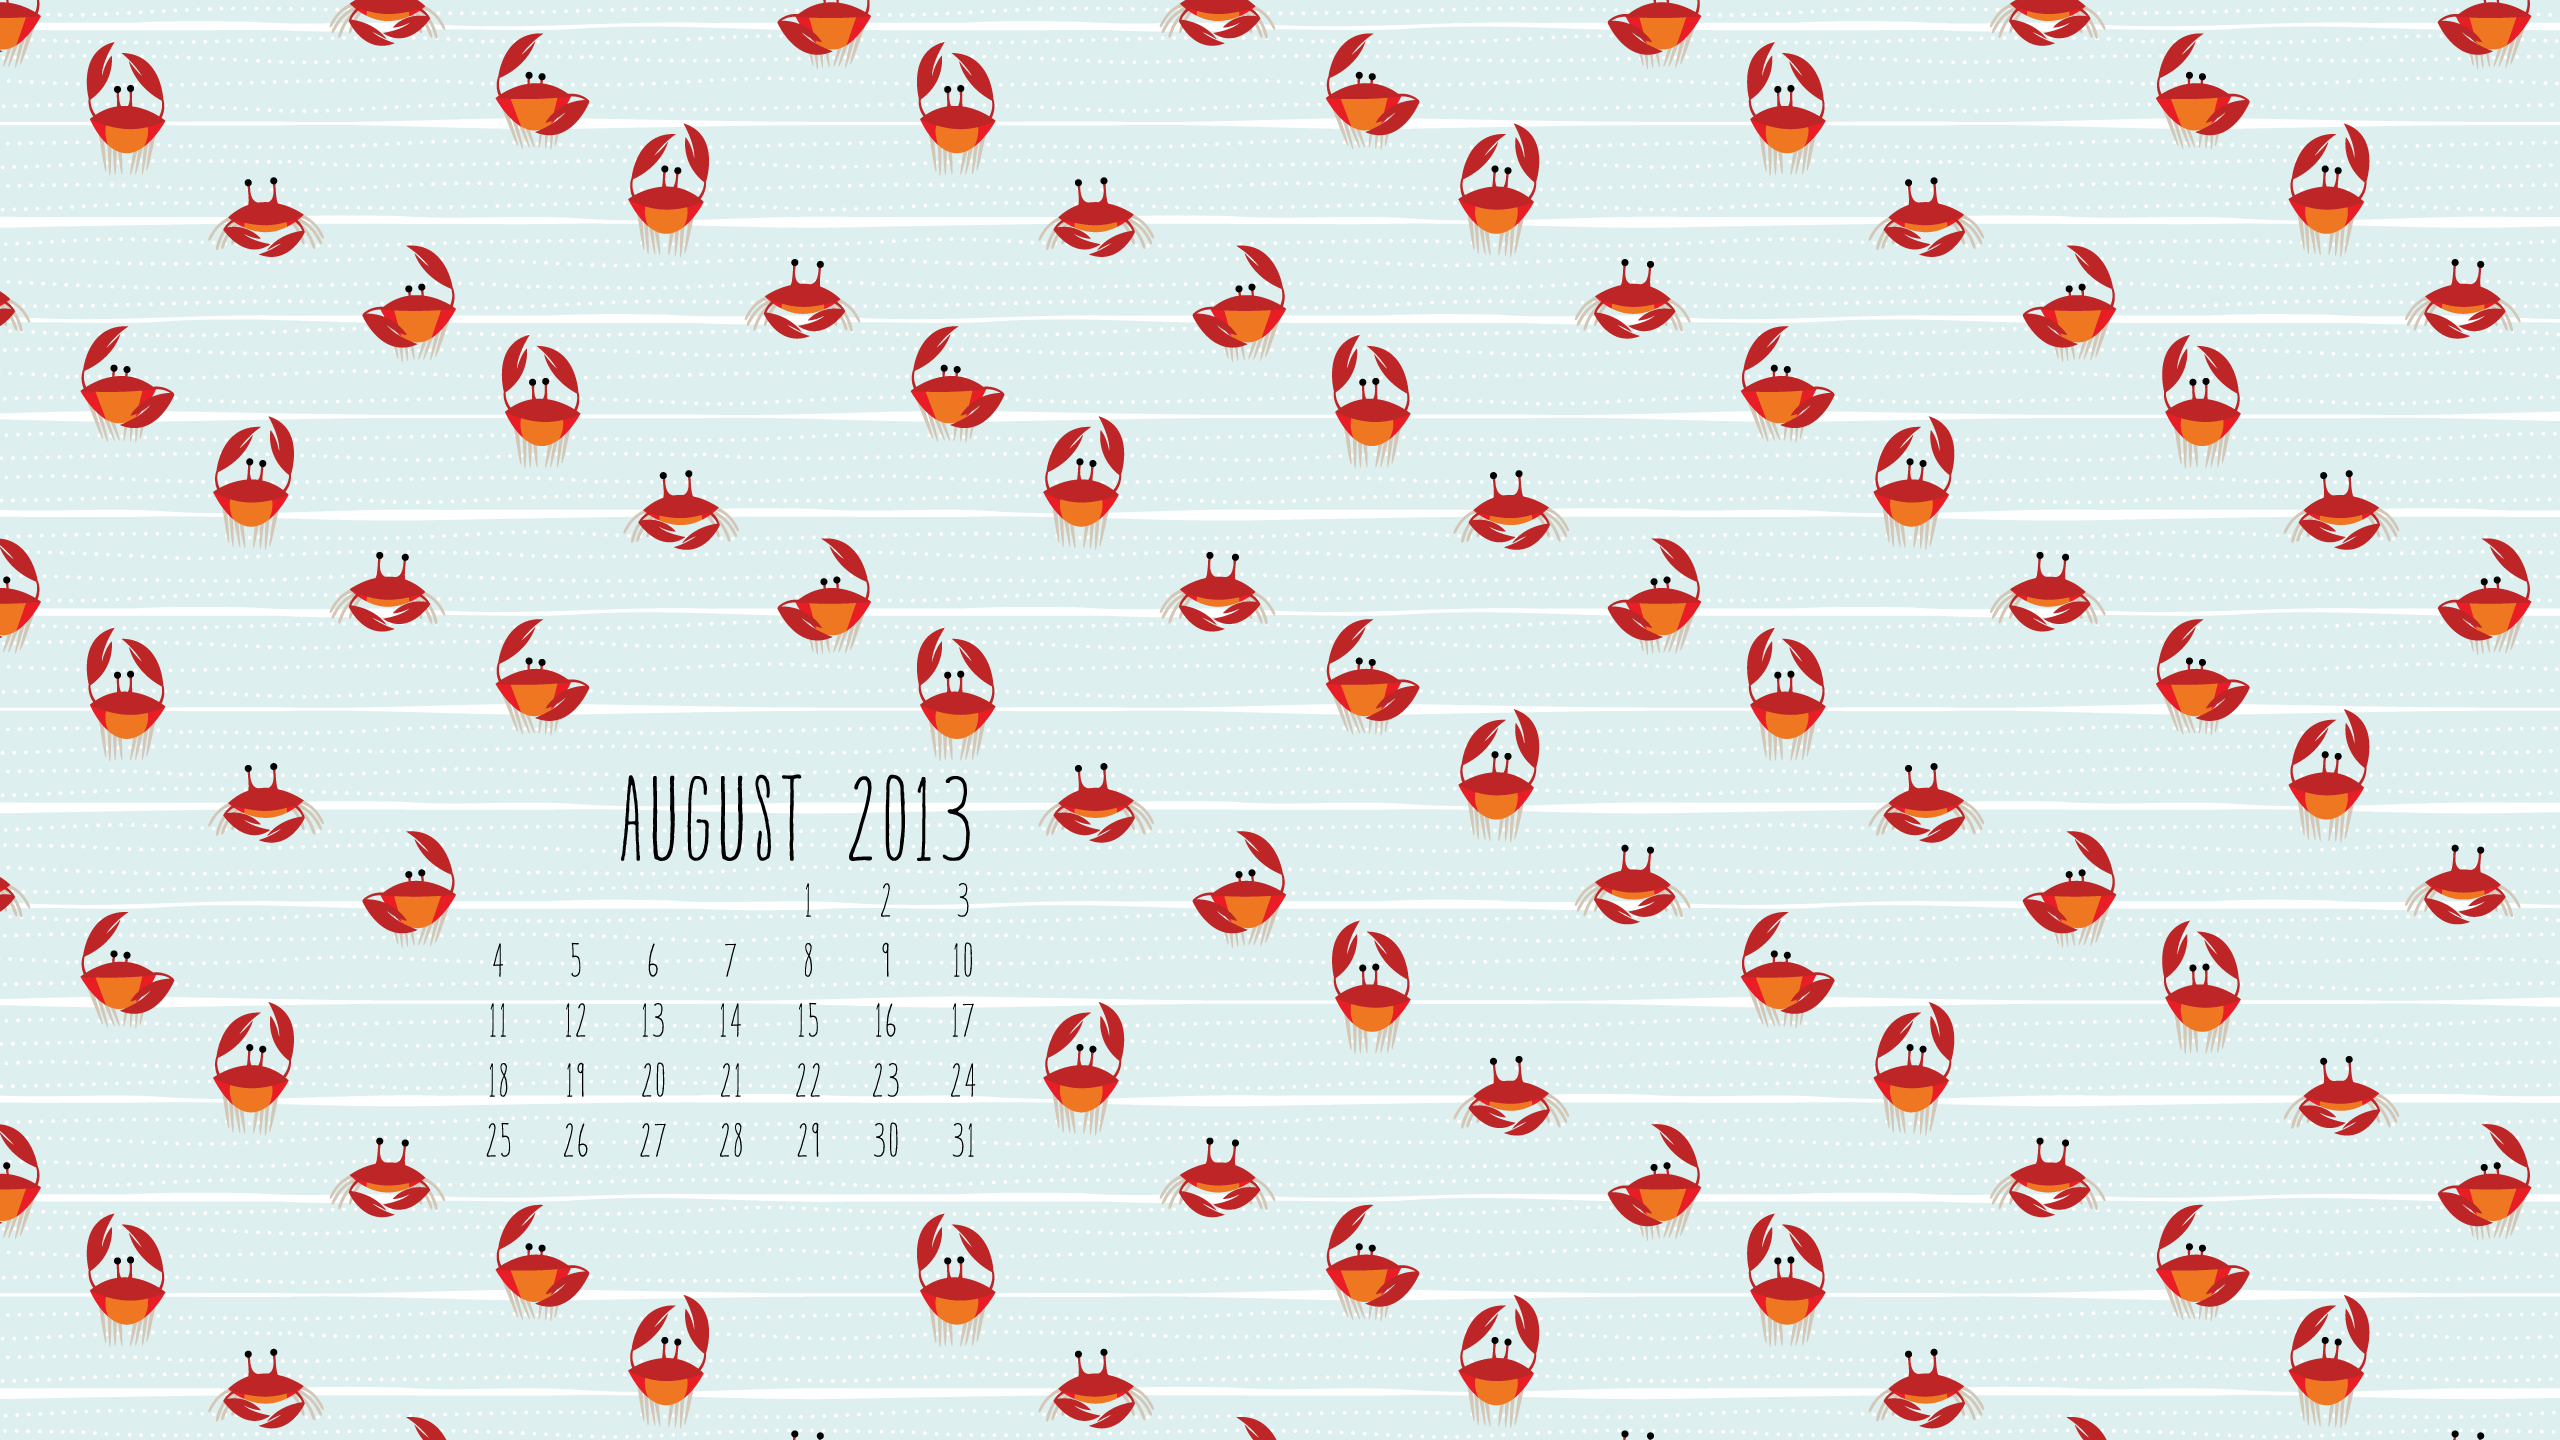 august2013-calendar-almaloveland-nicolesclasses